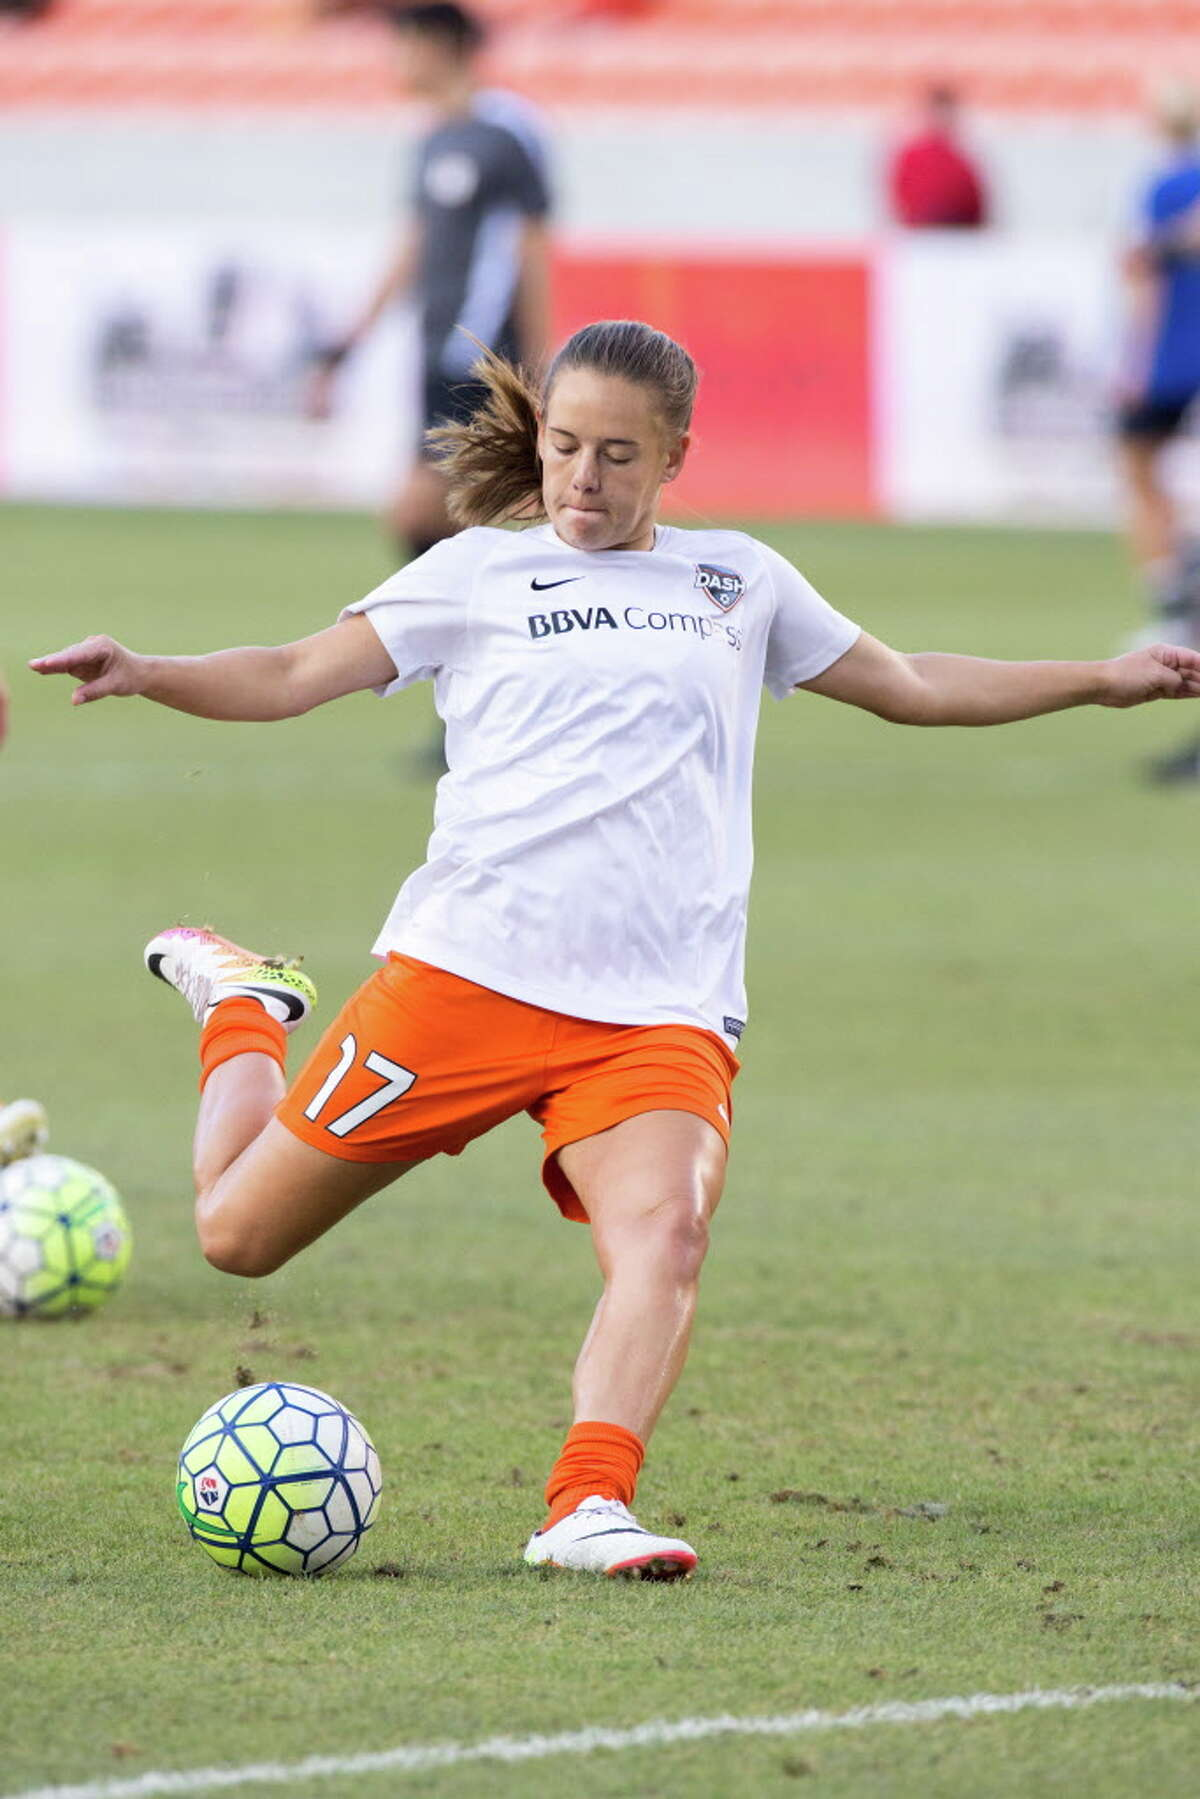 Houston Dash midfielder Andressa Machry (17) warms up on the field against the FC Kansas City before action between the Houston Dash and the FC Kansas City during a soccer game at BBVA Compass, Sunday, June 19, 2016, in Houston. FC Kansas City defeated Houston Dash 1-0.